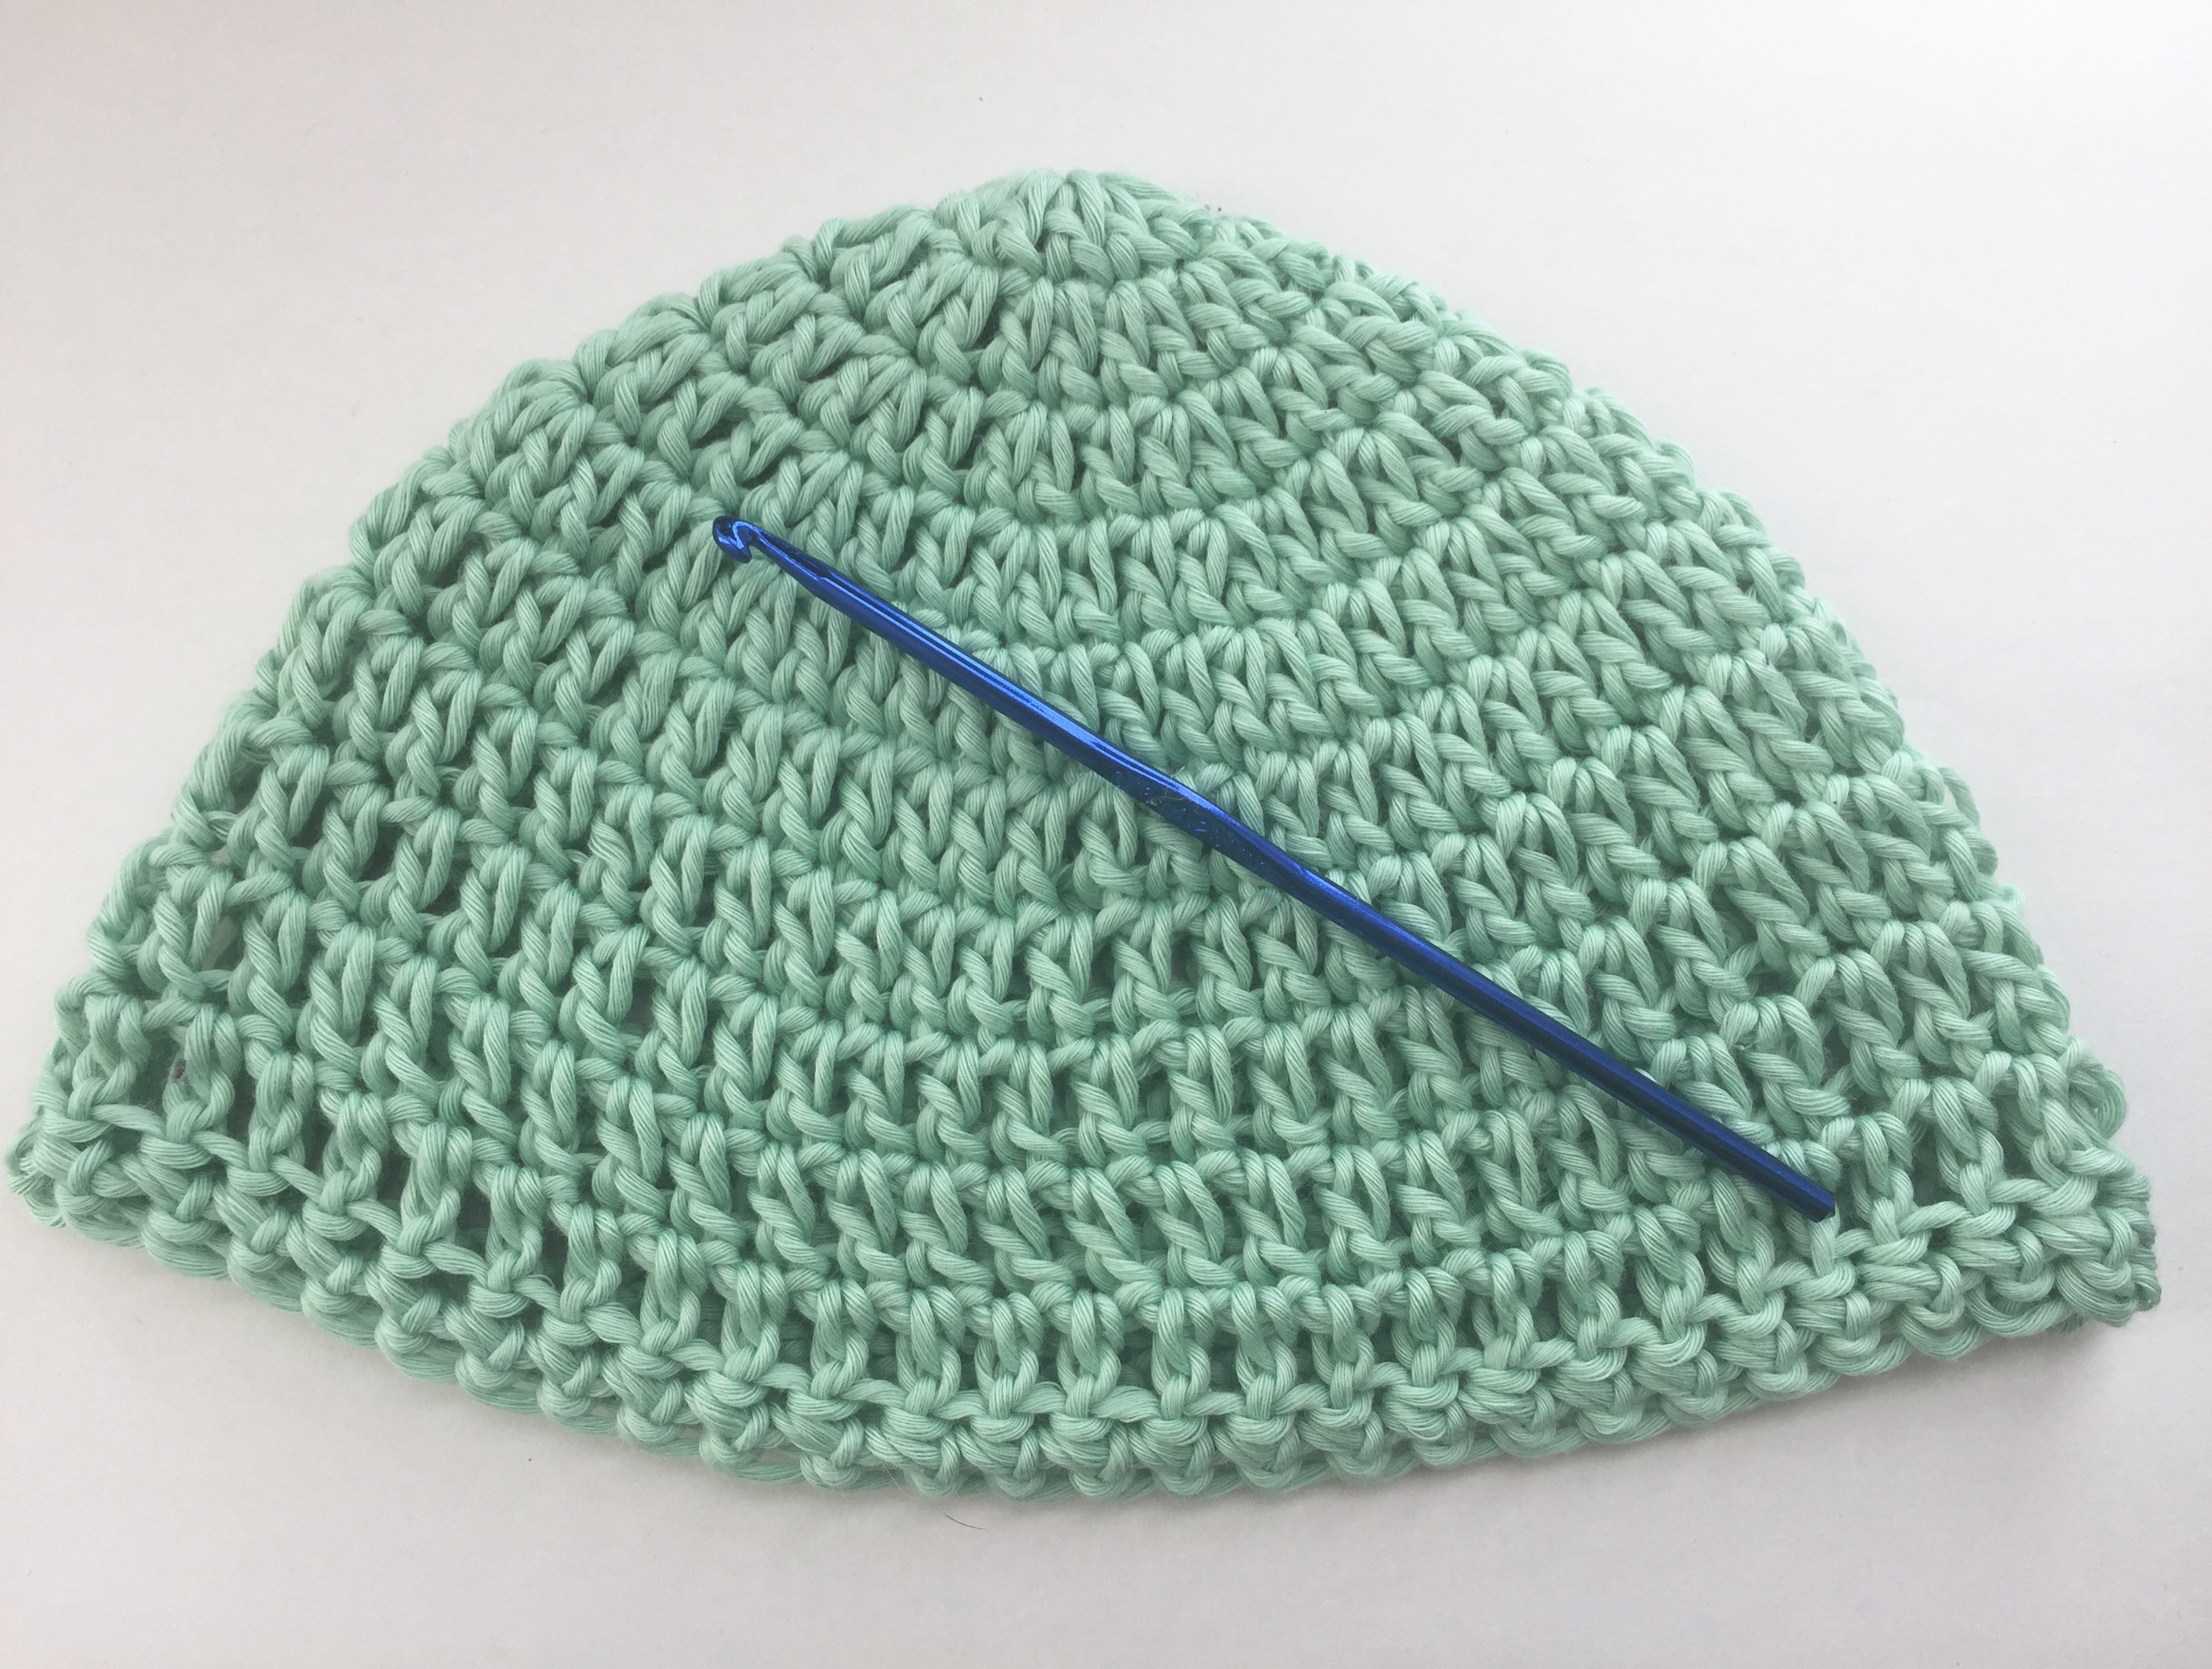 Crochet toddler Hat New How to Crochet A Baby Hat Step by Step Of Marvelous 41 Photos Crochet toddler Hat